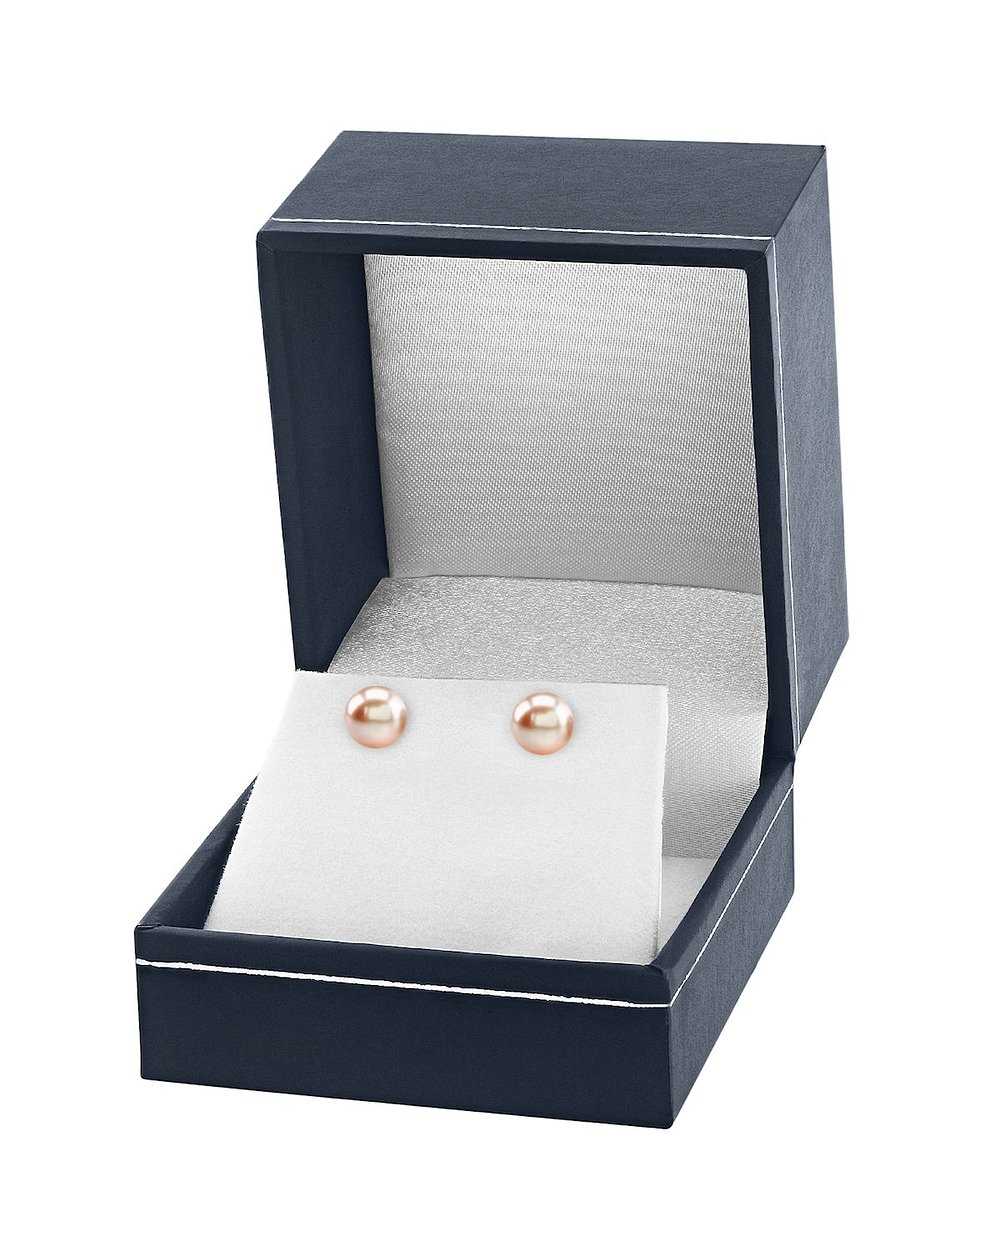 14K Gold 7-8mm AAAA Quality Round Peach Freshwater Cultured Pearl Stud Earrings Set for Women by The Pearl Source (Image #3)